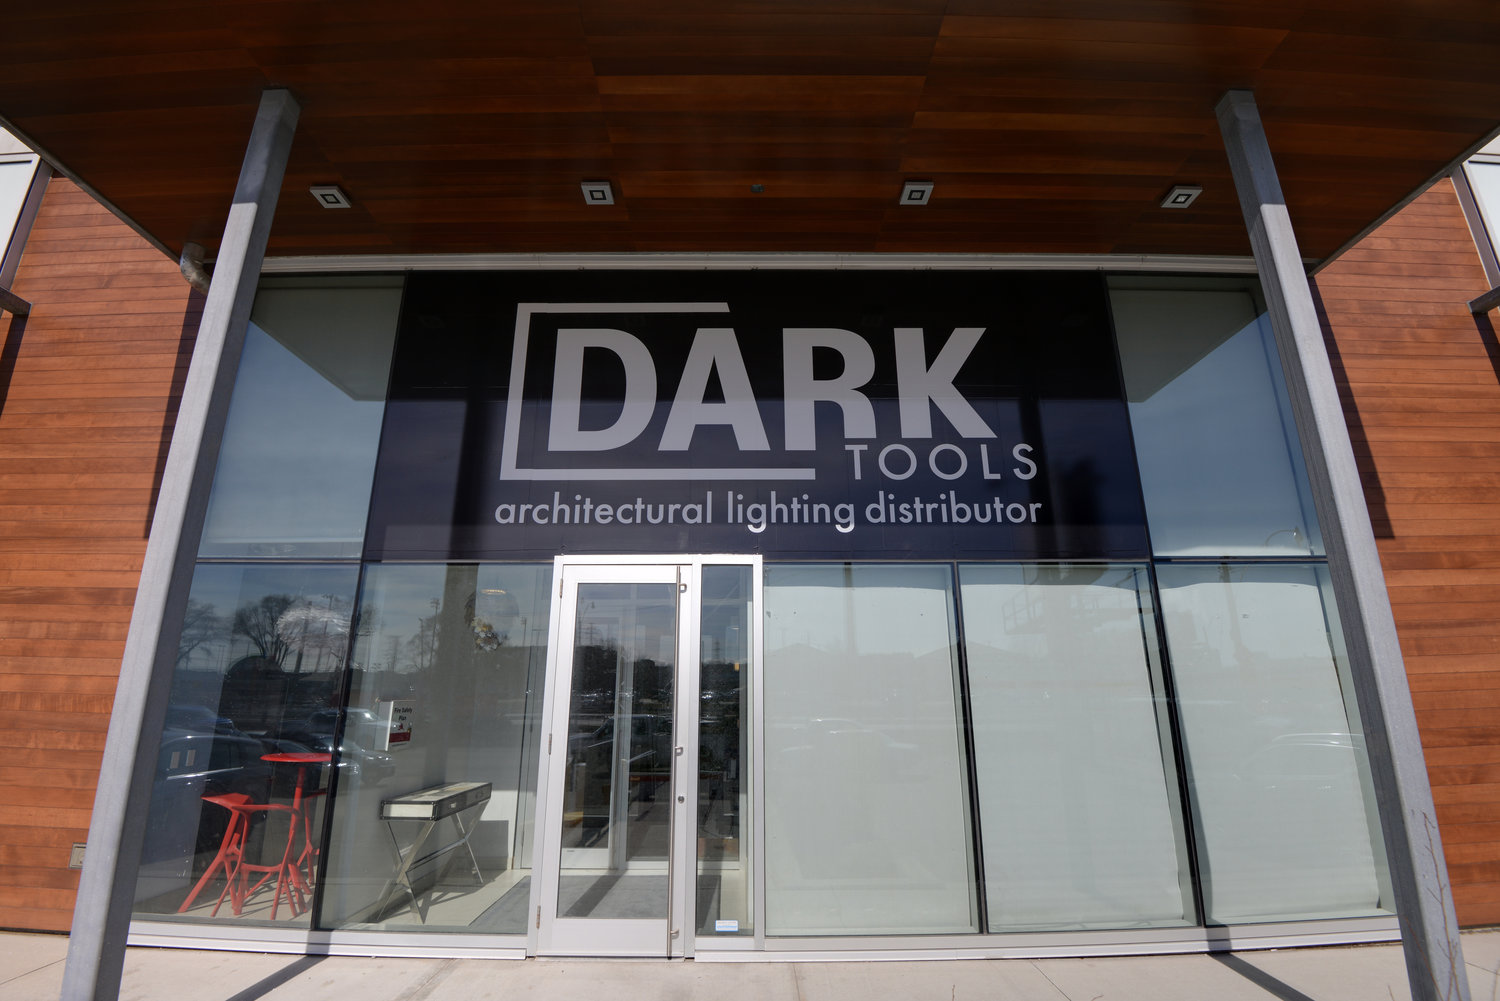 Discover Here The Best Lighting Stores In Toronto 9 Lighting Stores In Toronto Discover Here The Best Lighting Stores In Toronto Discover Here The Best Lighting Stores In Toronto 9